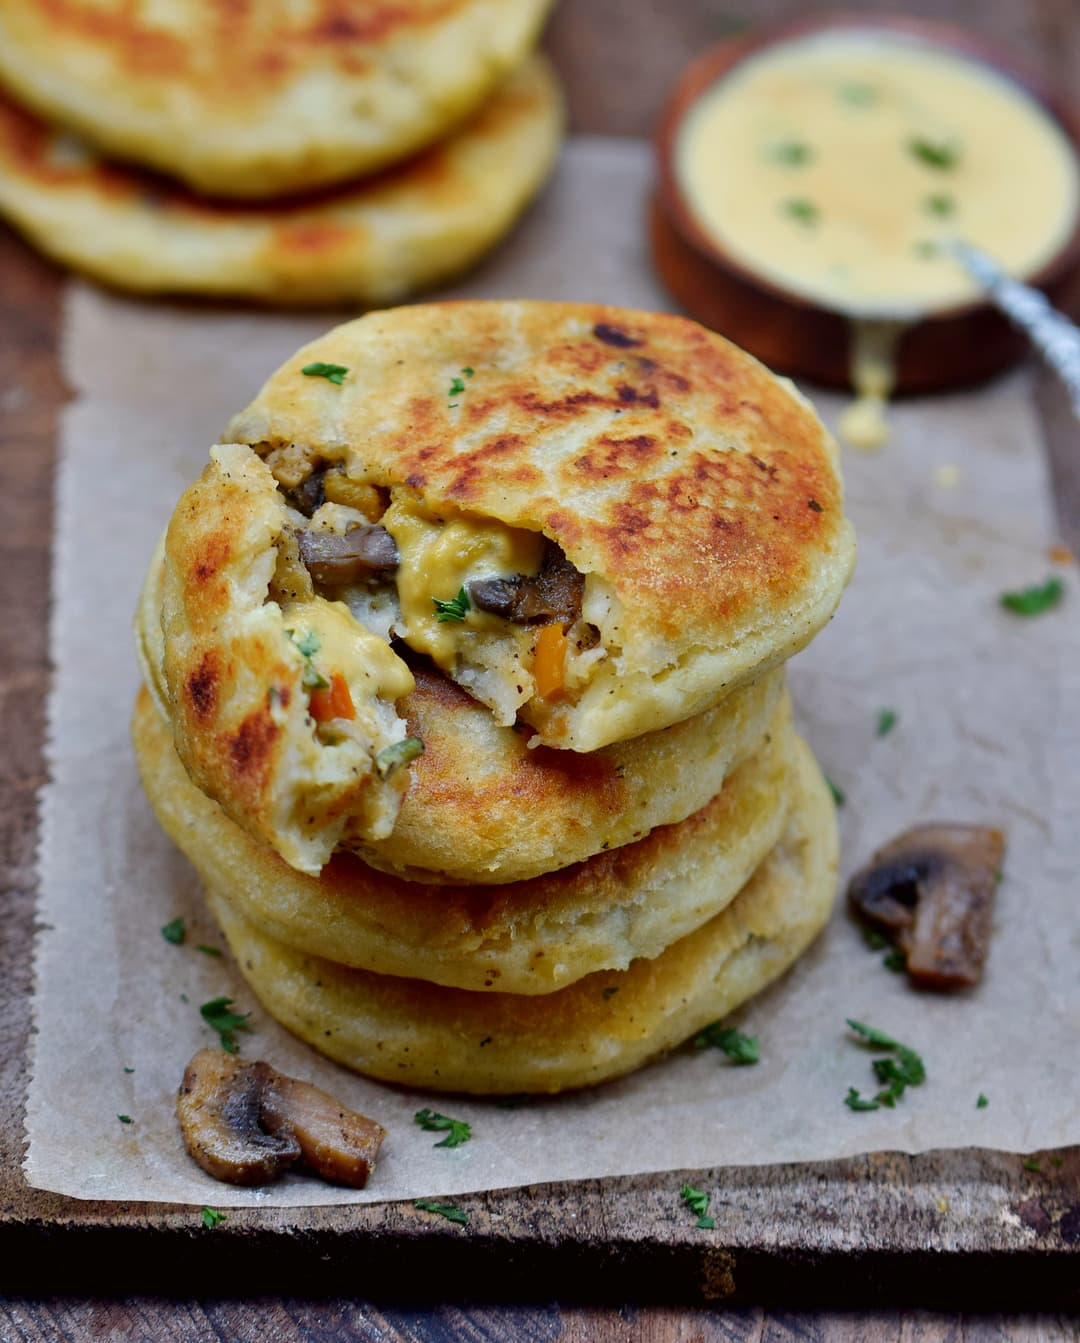 Stuffed potato cakes with mushrooms, veggies and vegan cheese sauce